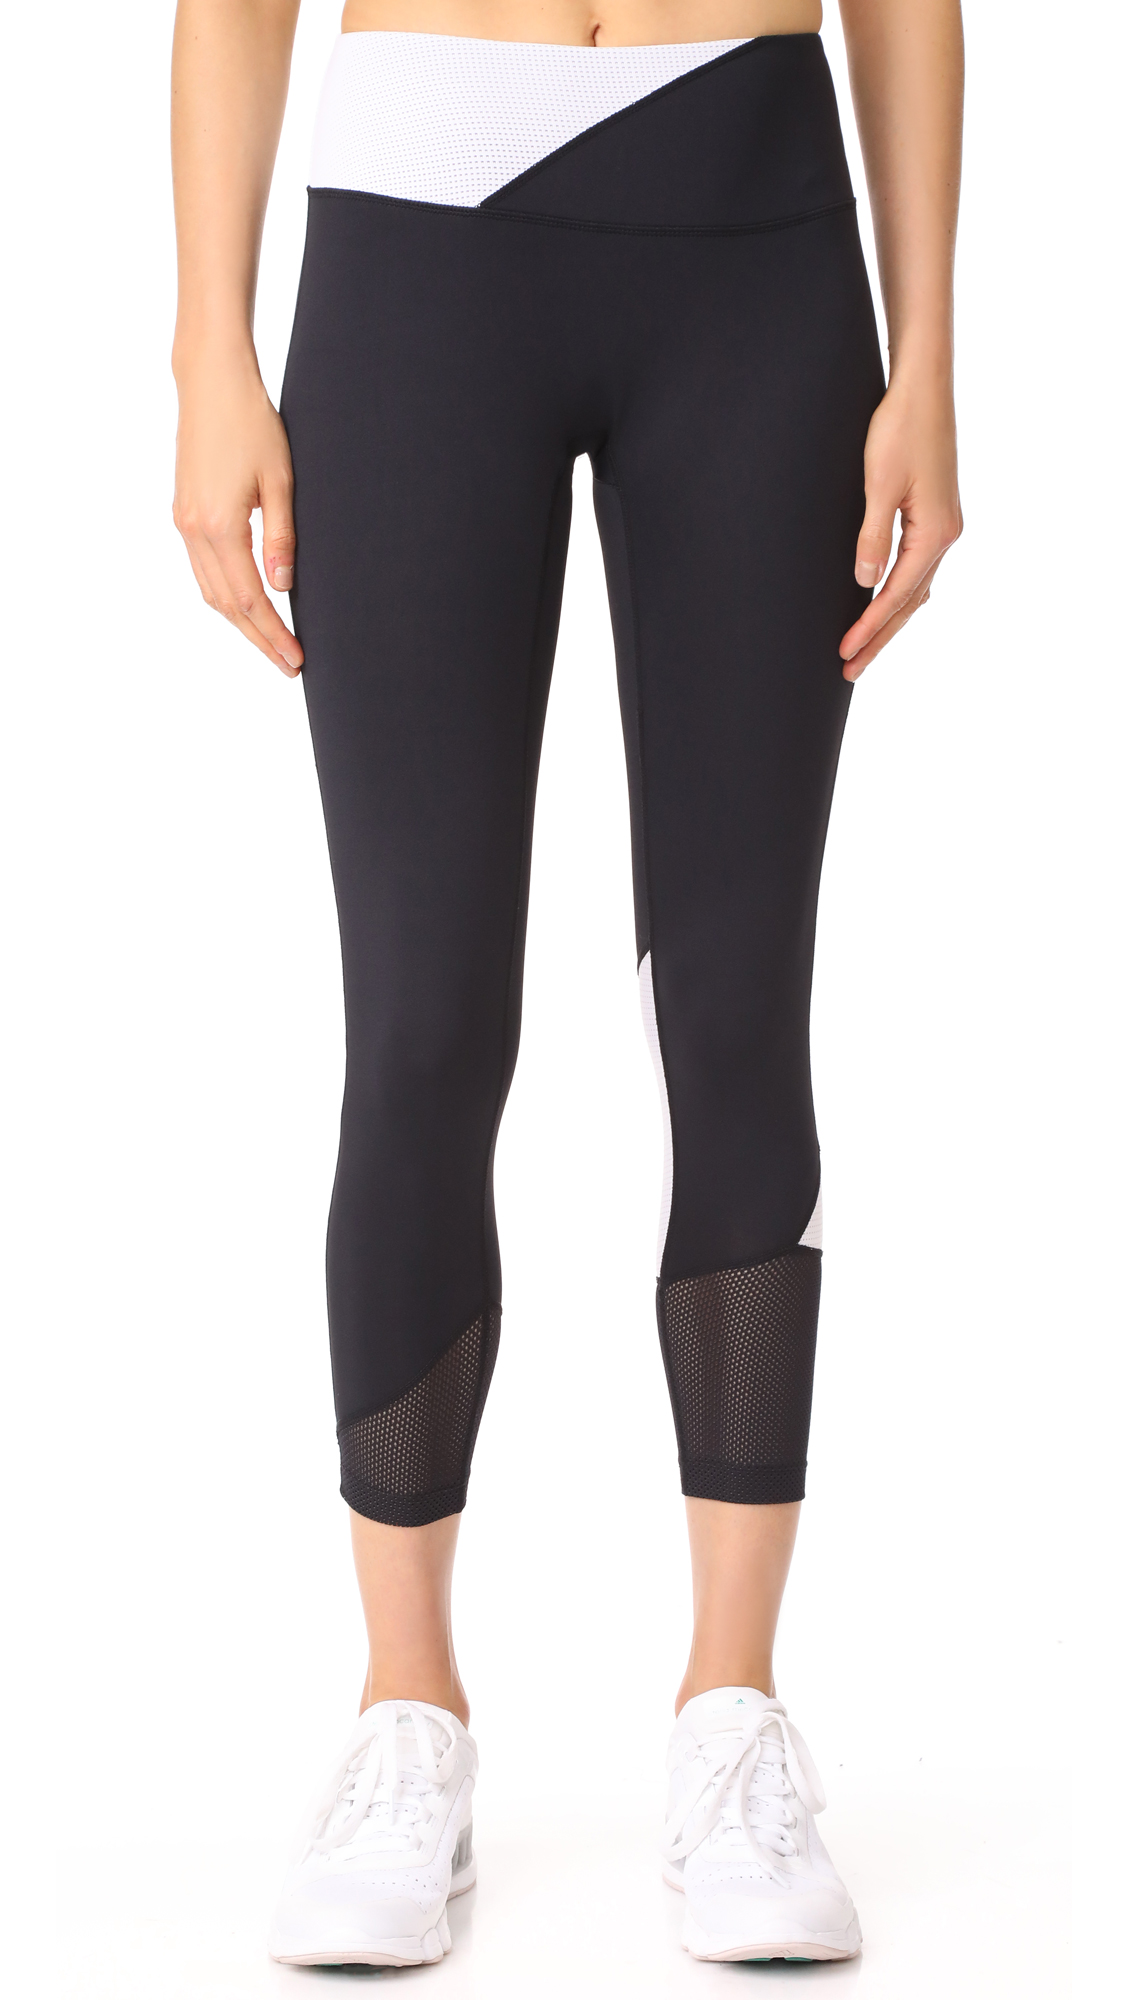 PRISMSPORT Splice Dash 7/8 Leggings